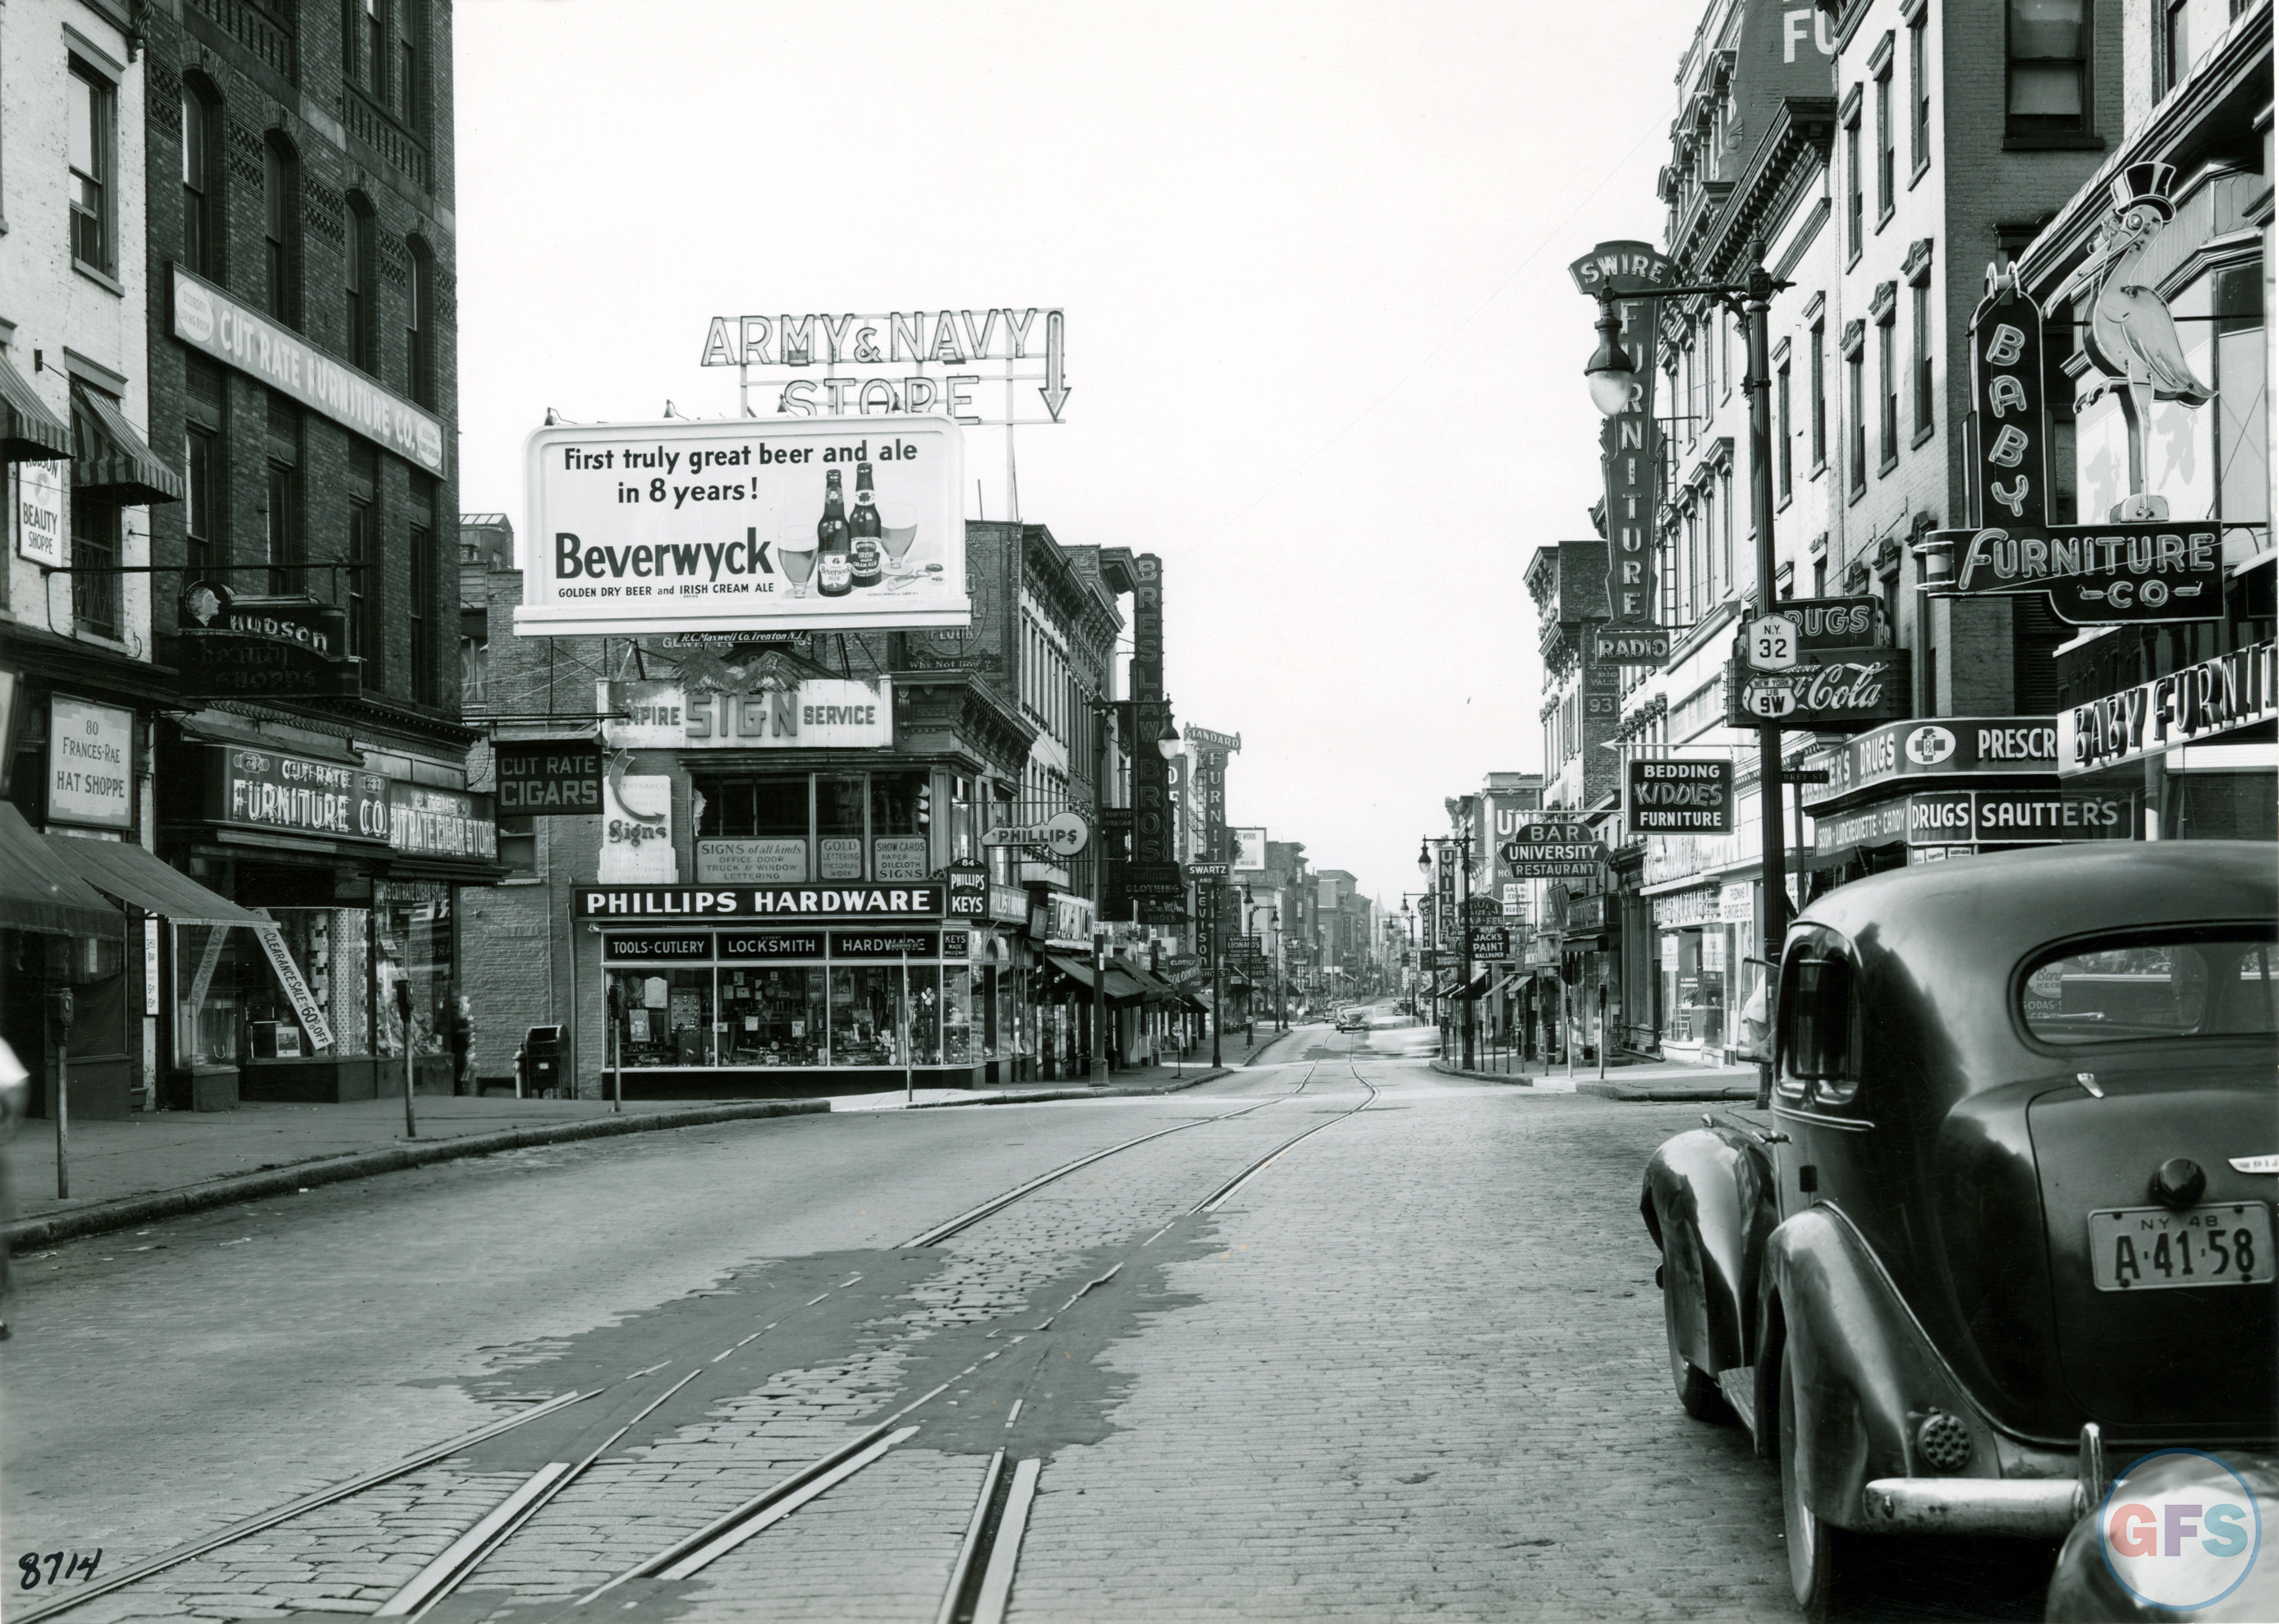 Vintage Photo Wednesday, Vol. 28: Albany Street Ads, 1948